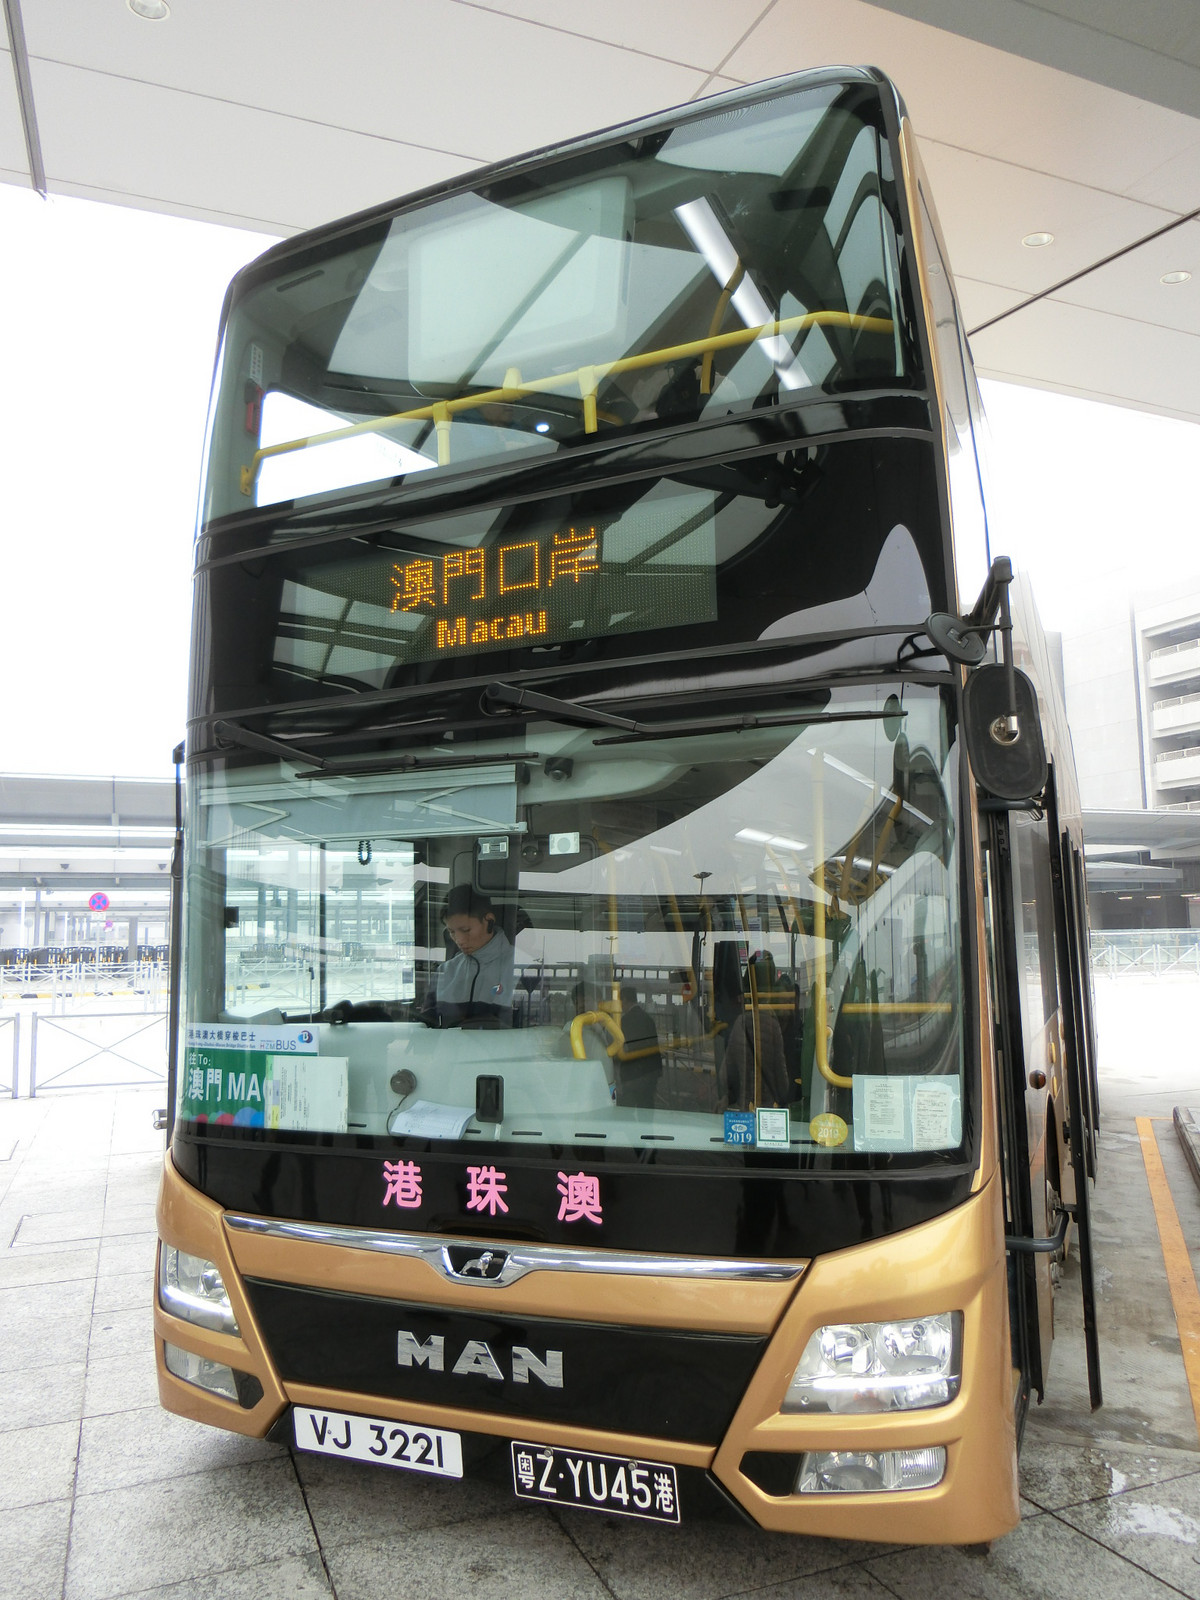 09hong_kongzhuhaimacao_bridge_bus